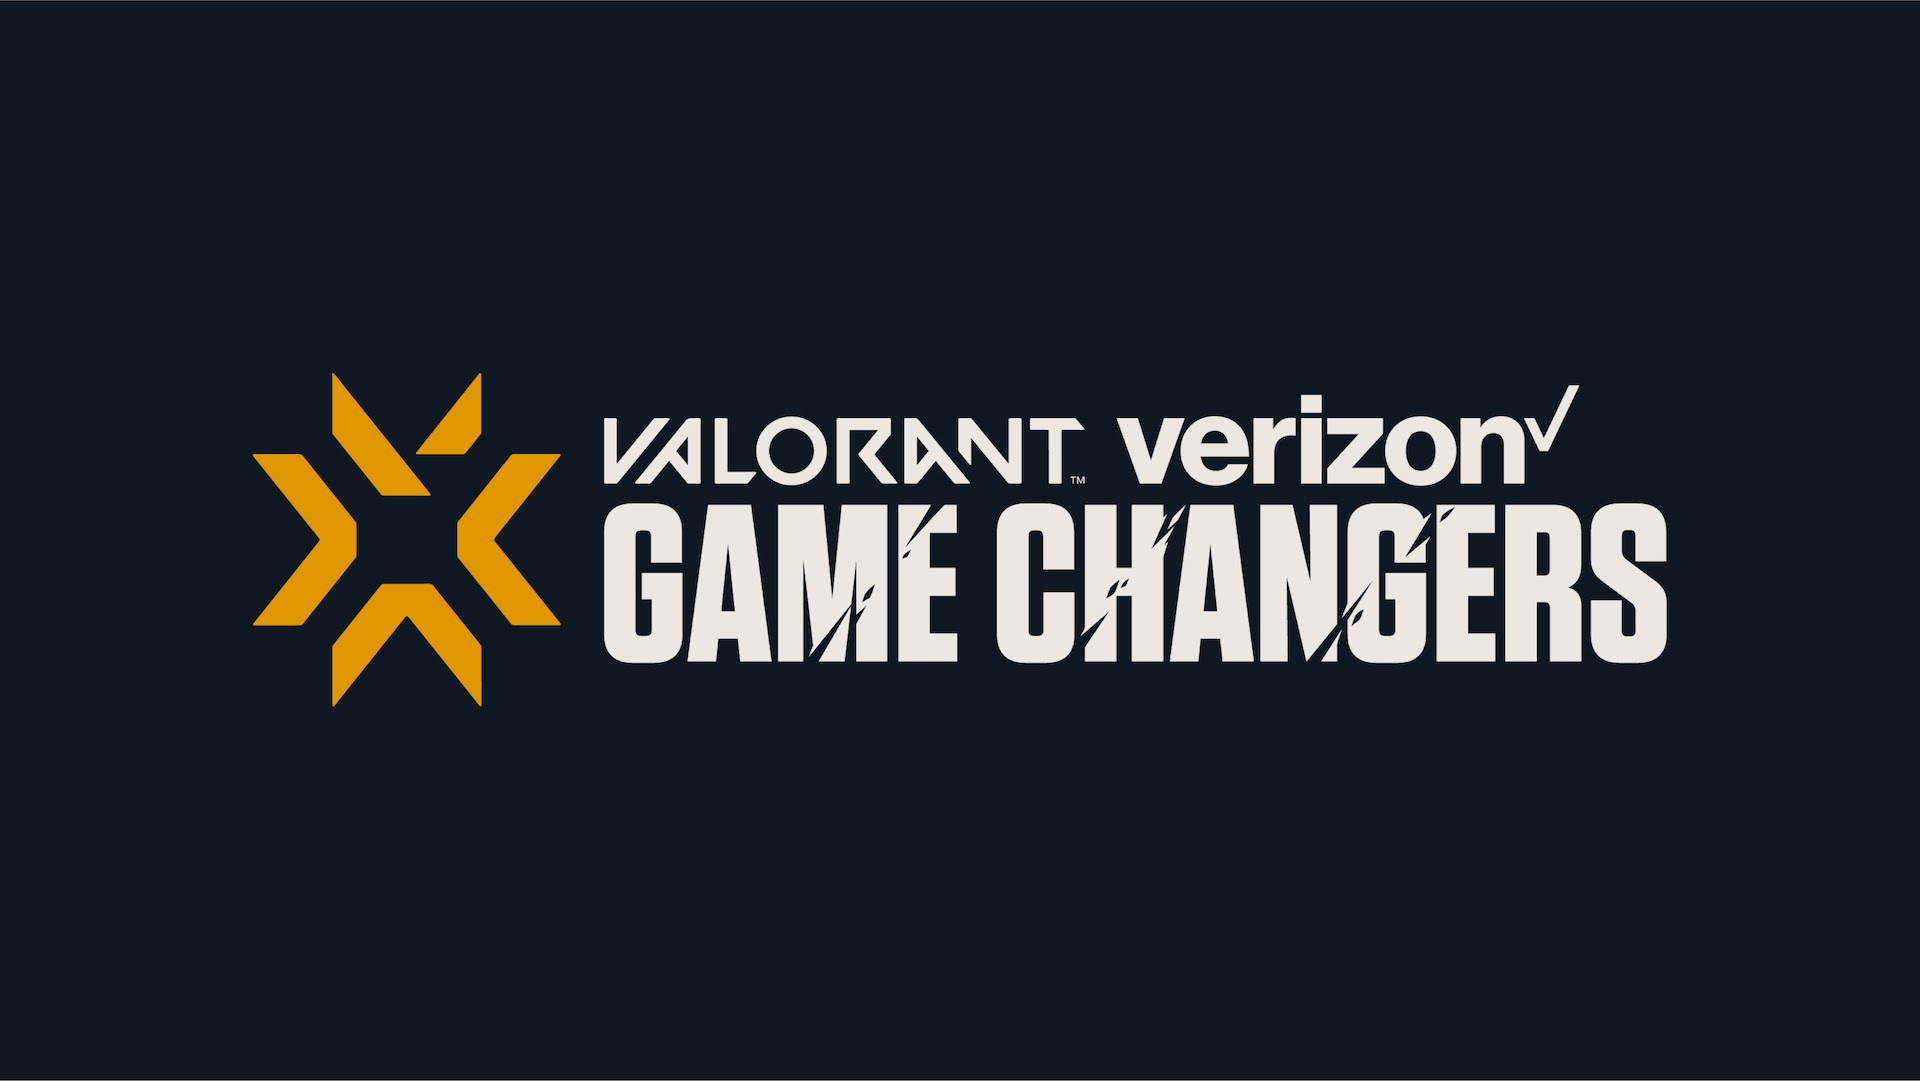 Verizon VCT Game Changers returns for Series 3